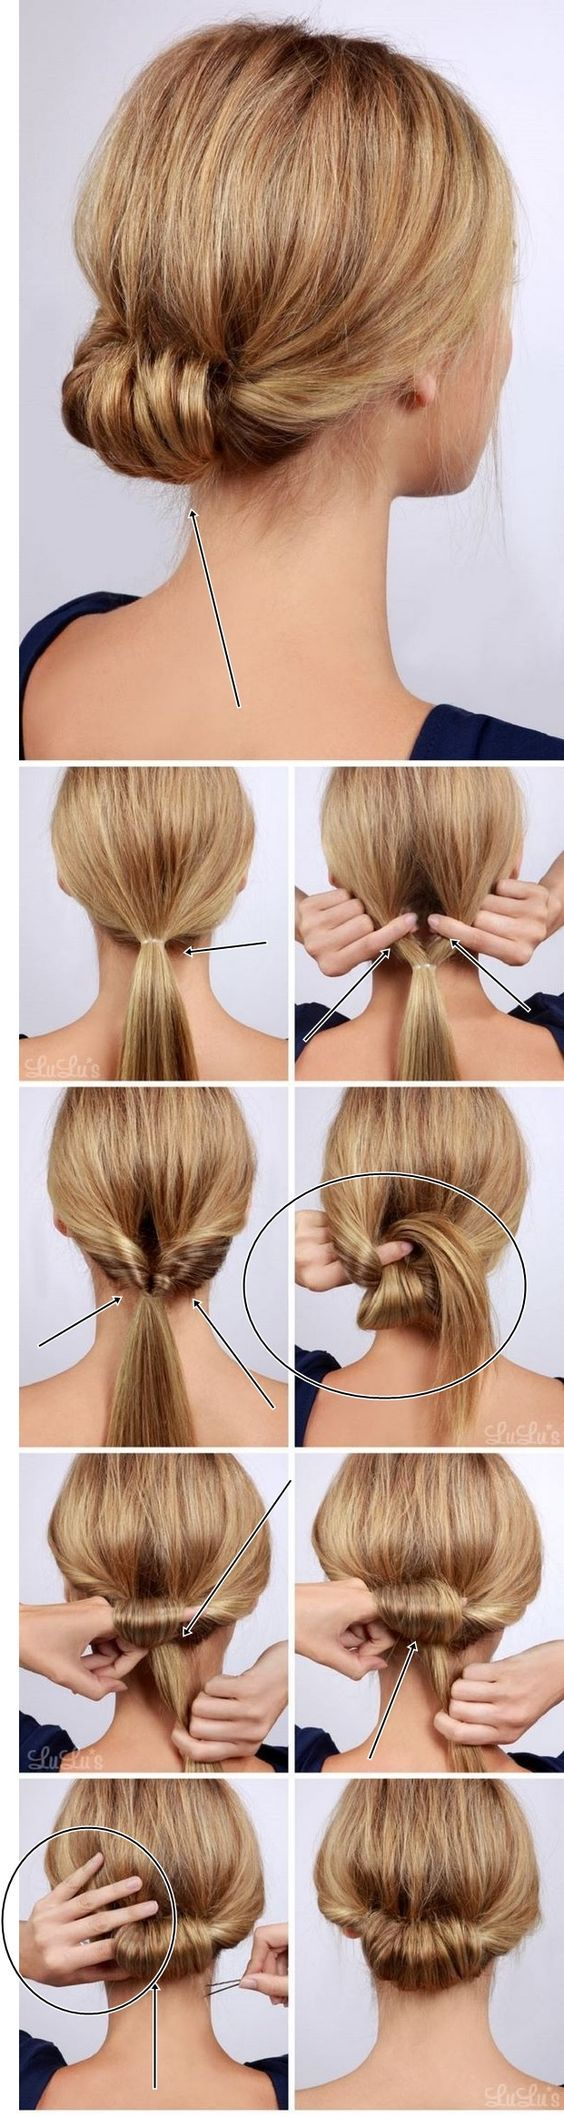 Pin Auf Must Try Braided Hairstyles